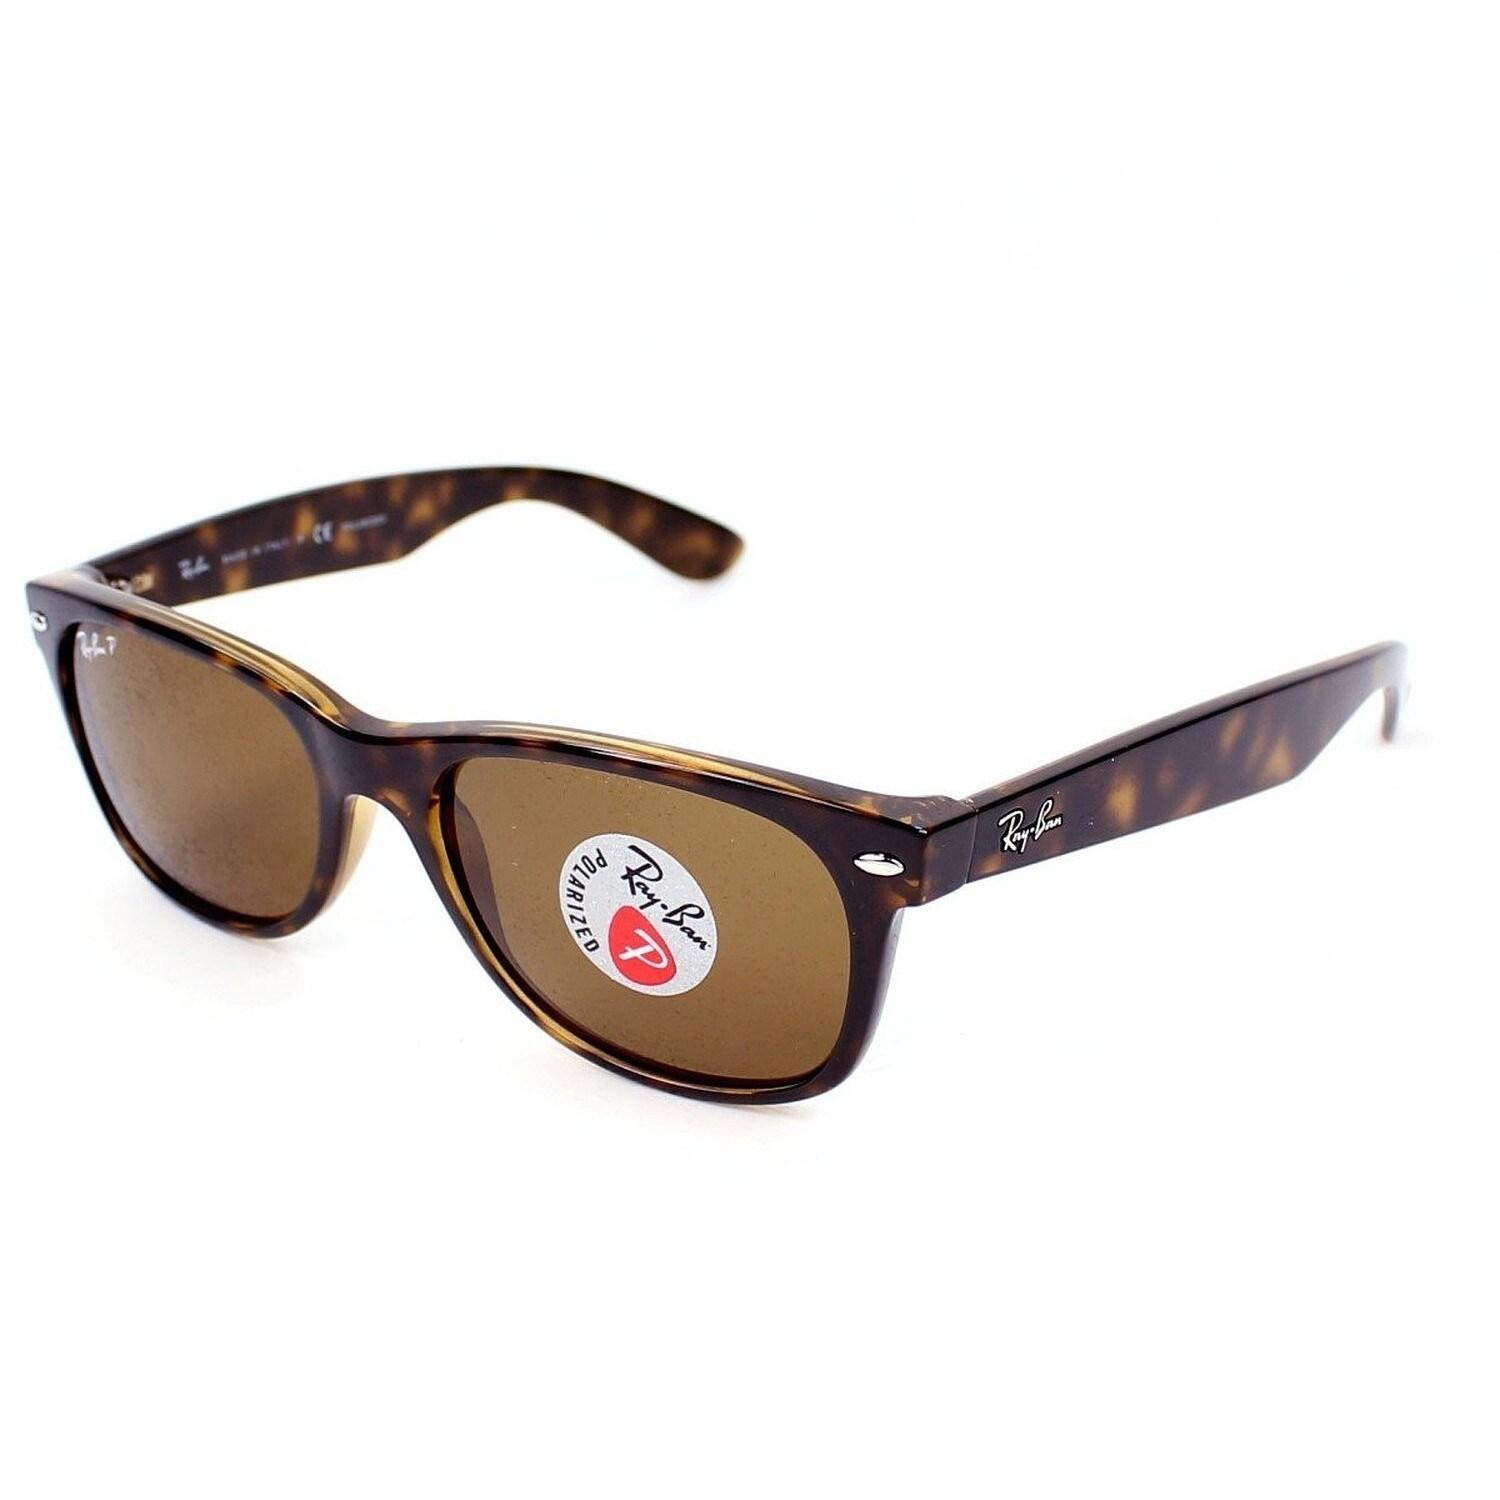 40de1cc521 Shop Ray-Ban RB2132 902 57 Unisex New Wayfarer Classic Tortoise Frame  Polarized Brown 55mm Lens Sunglasses - Free Shipping Today - Overstock -  11118555